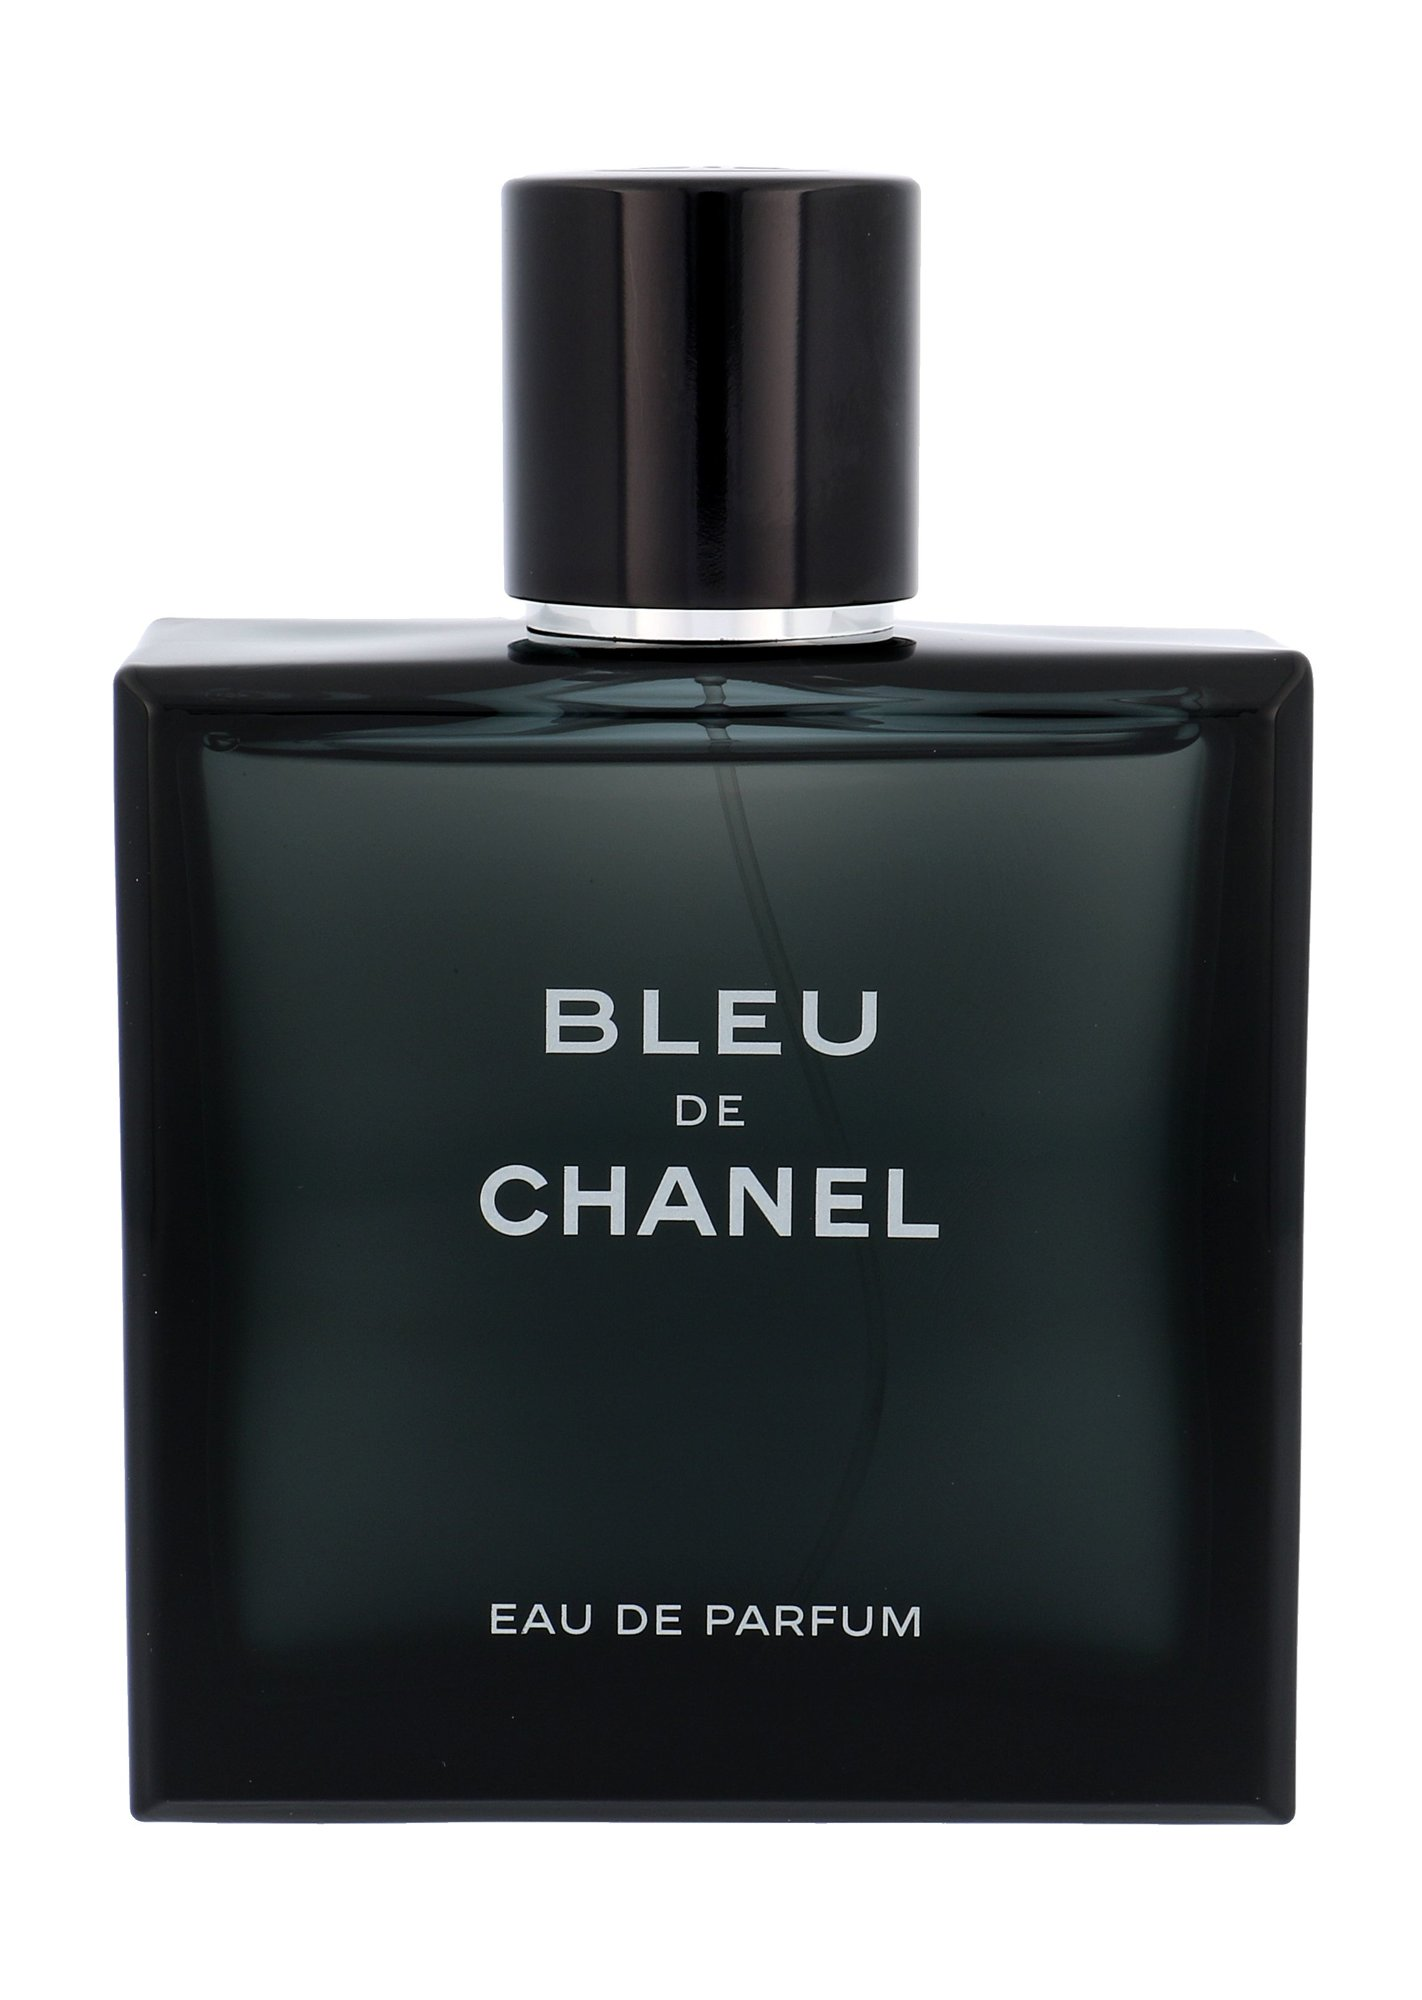 Chanel Bleu de Chanel EDP 150ml